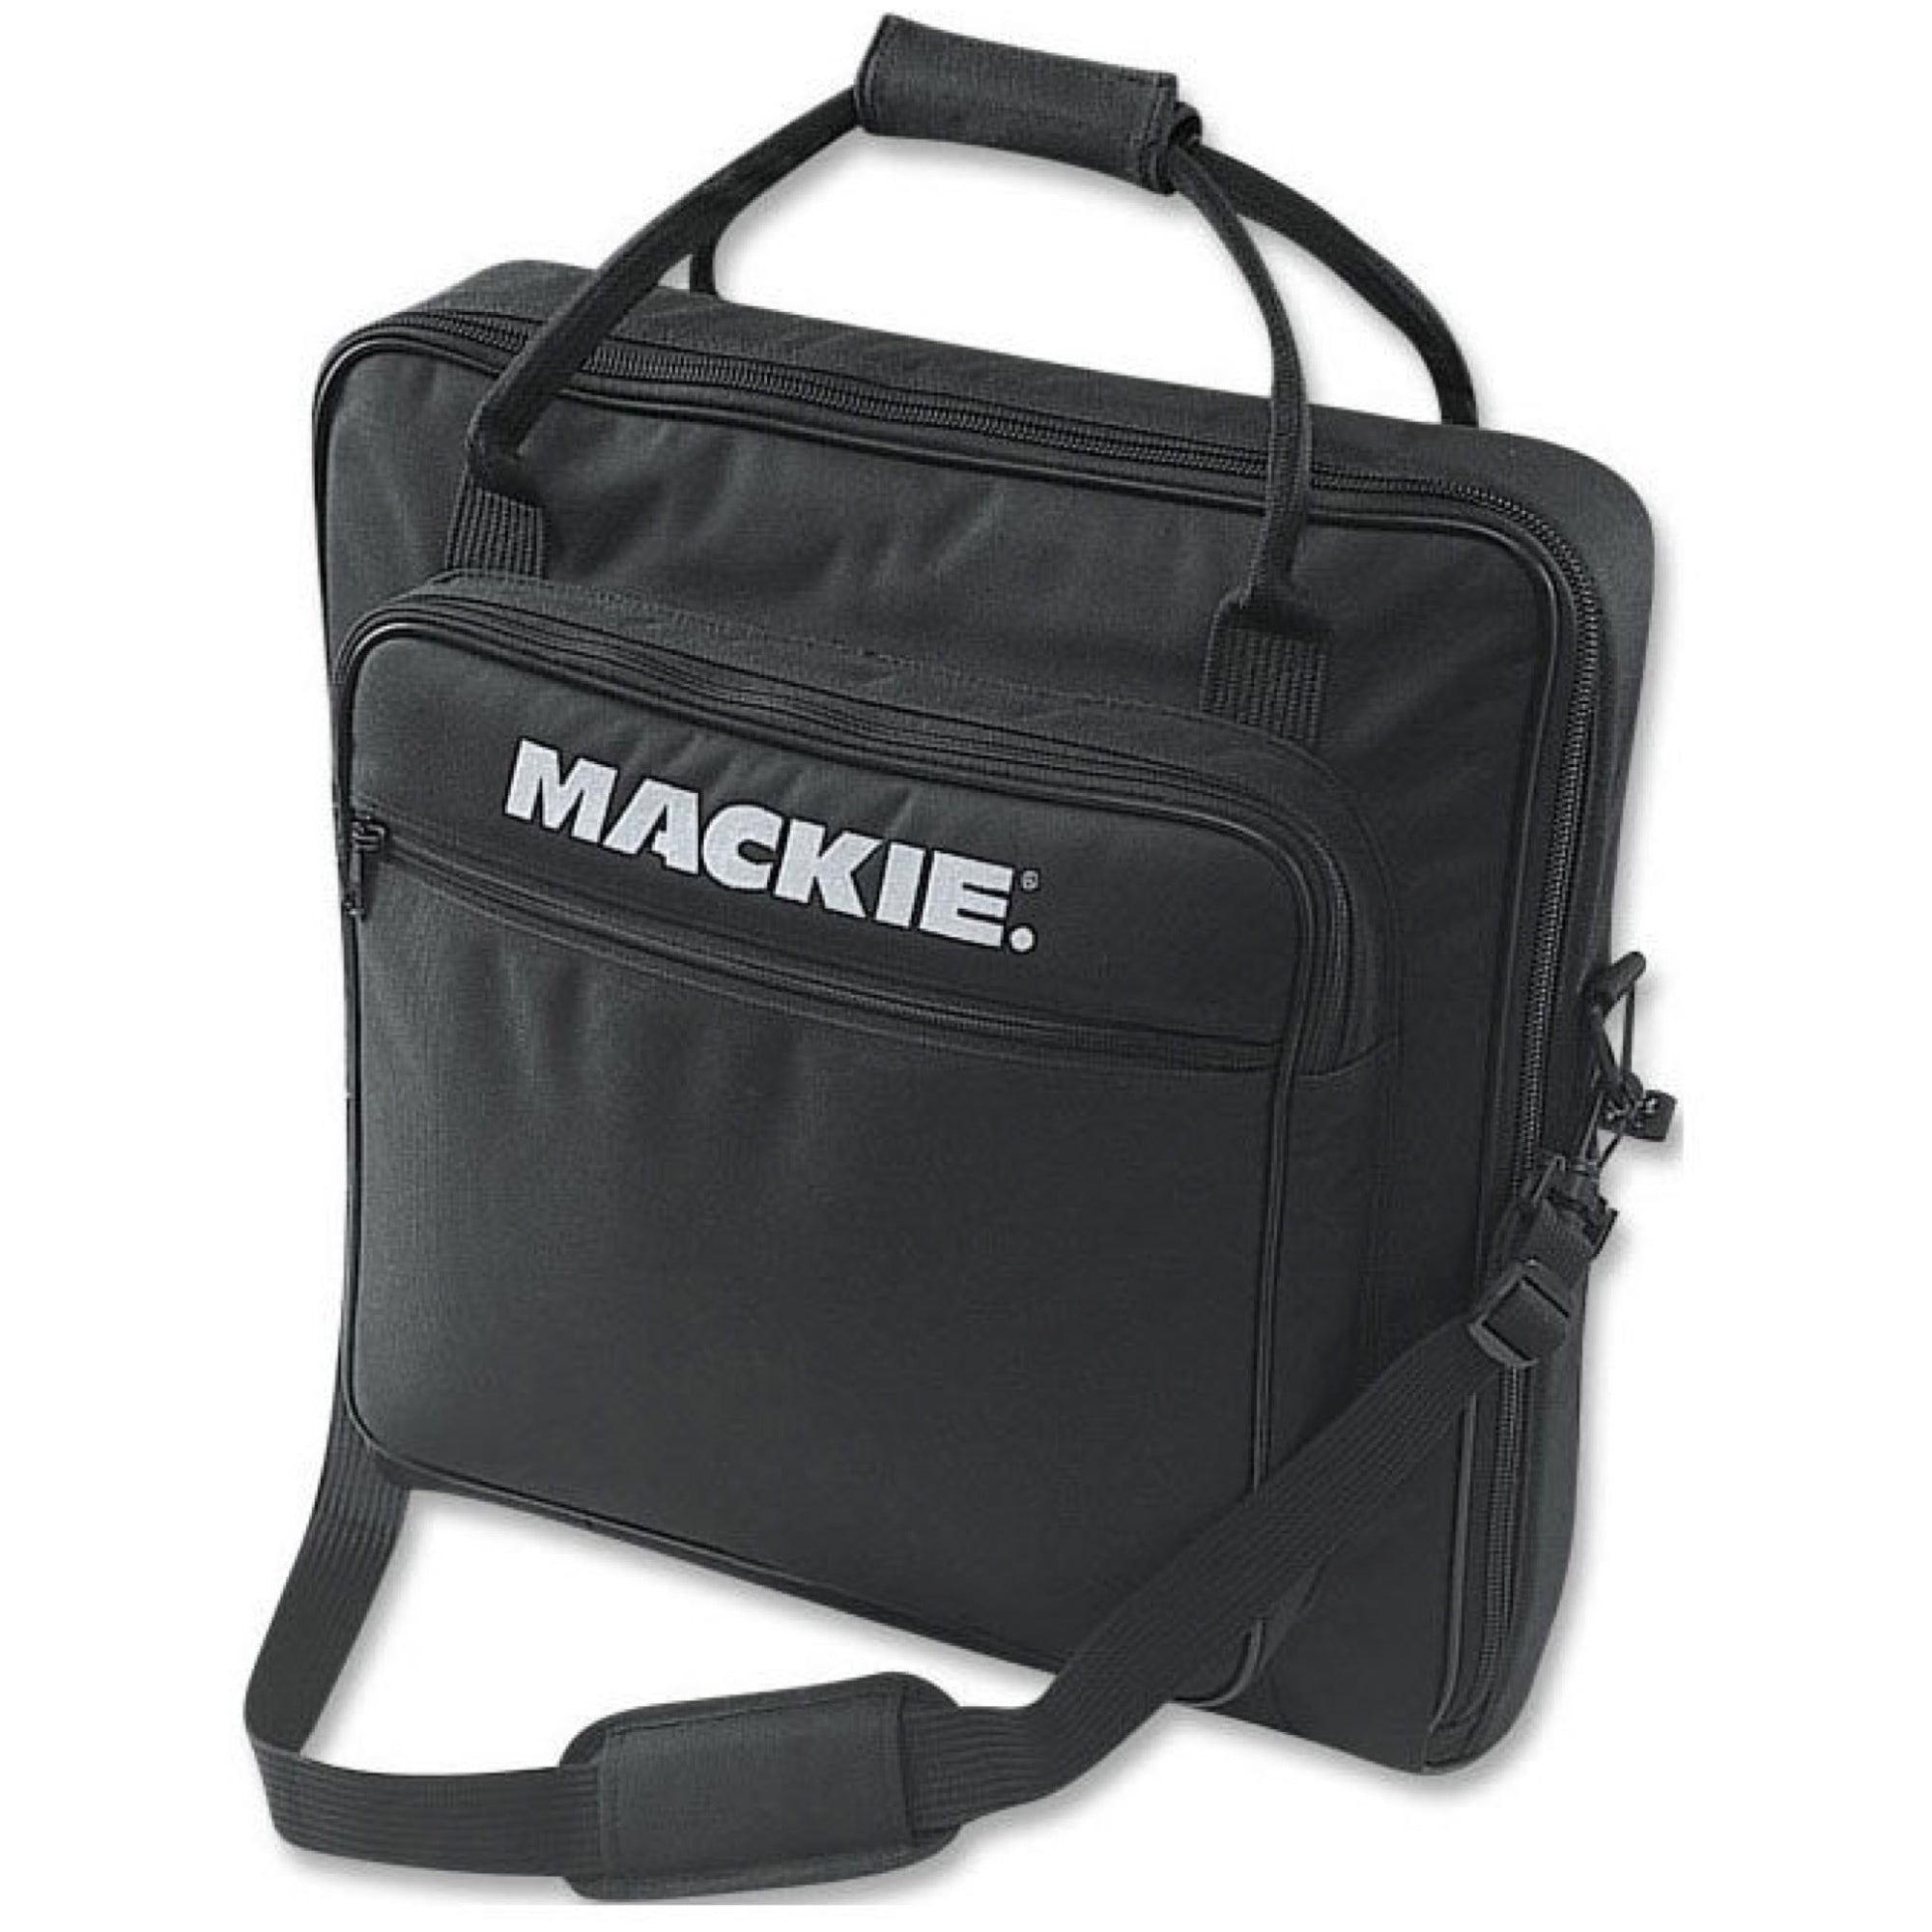 Mackie Mixer Bag for 1402VLZ Pro and VLZ3